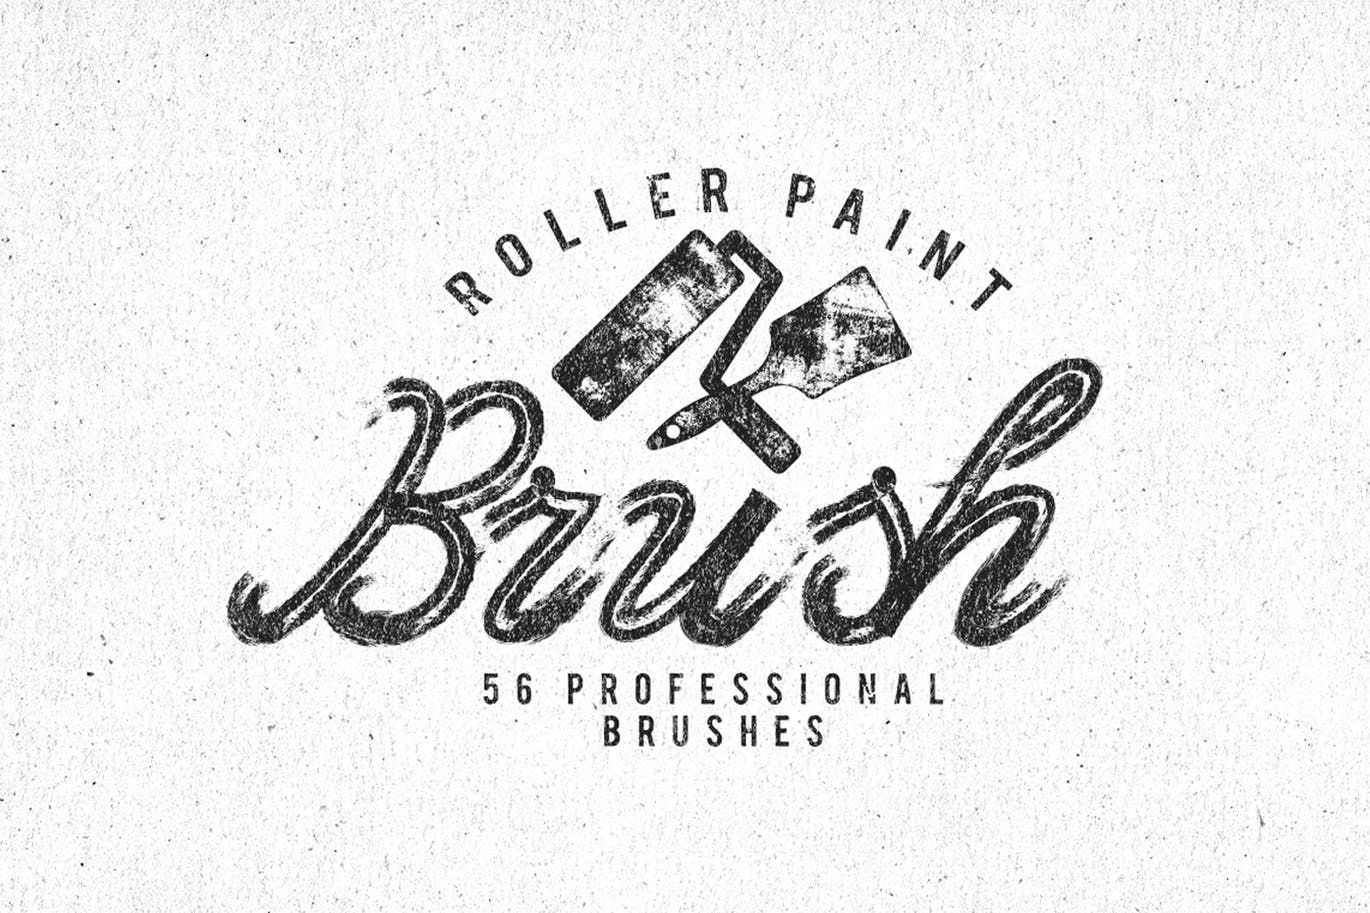 Roller paint brushes